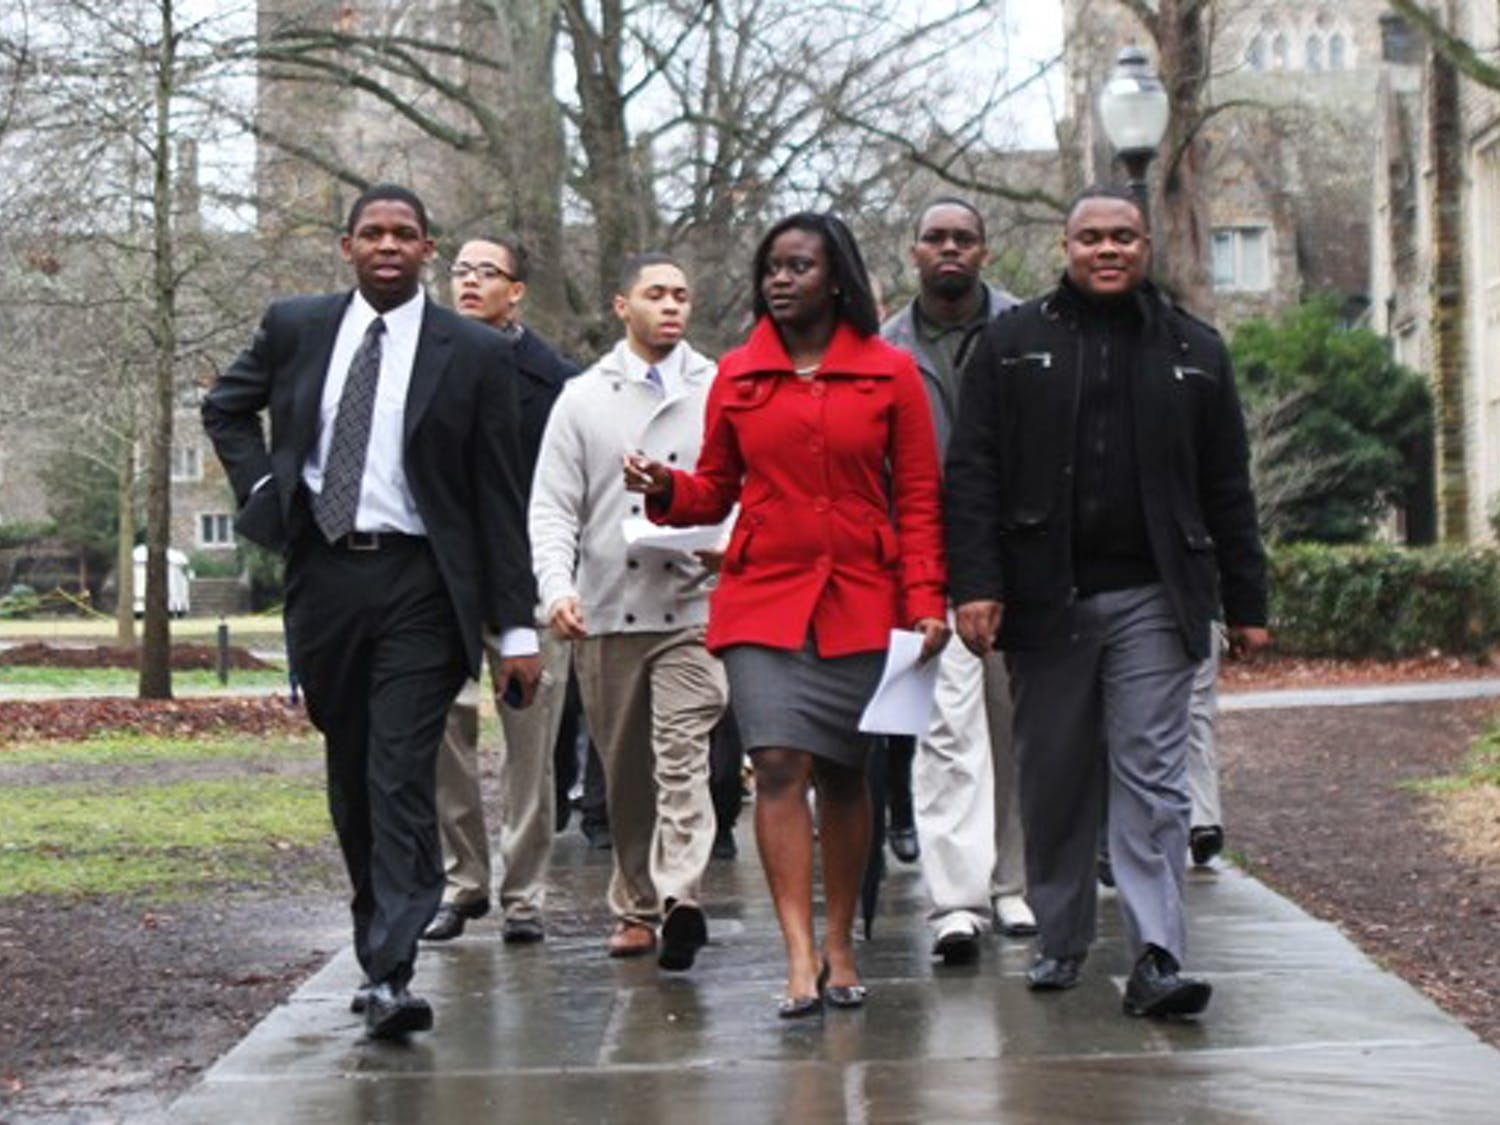 Approximately 20 members of the Black Student Alliance walked to the Allen Building Tuesday morning with a  document outlining their concerns.